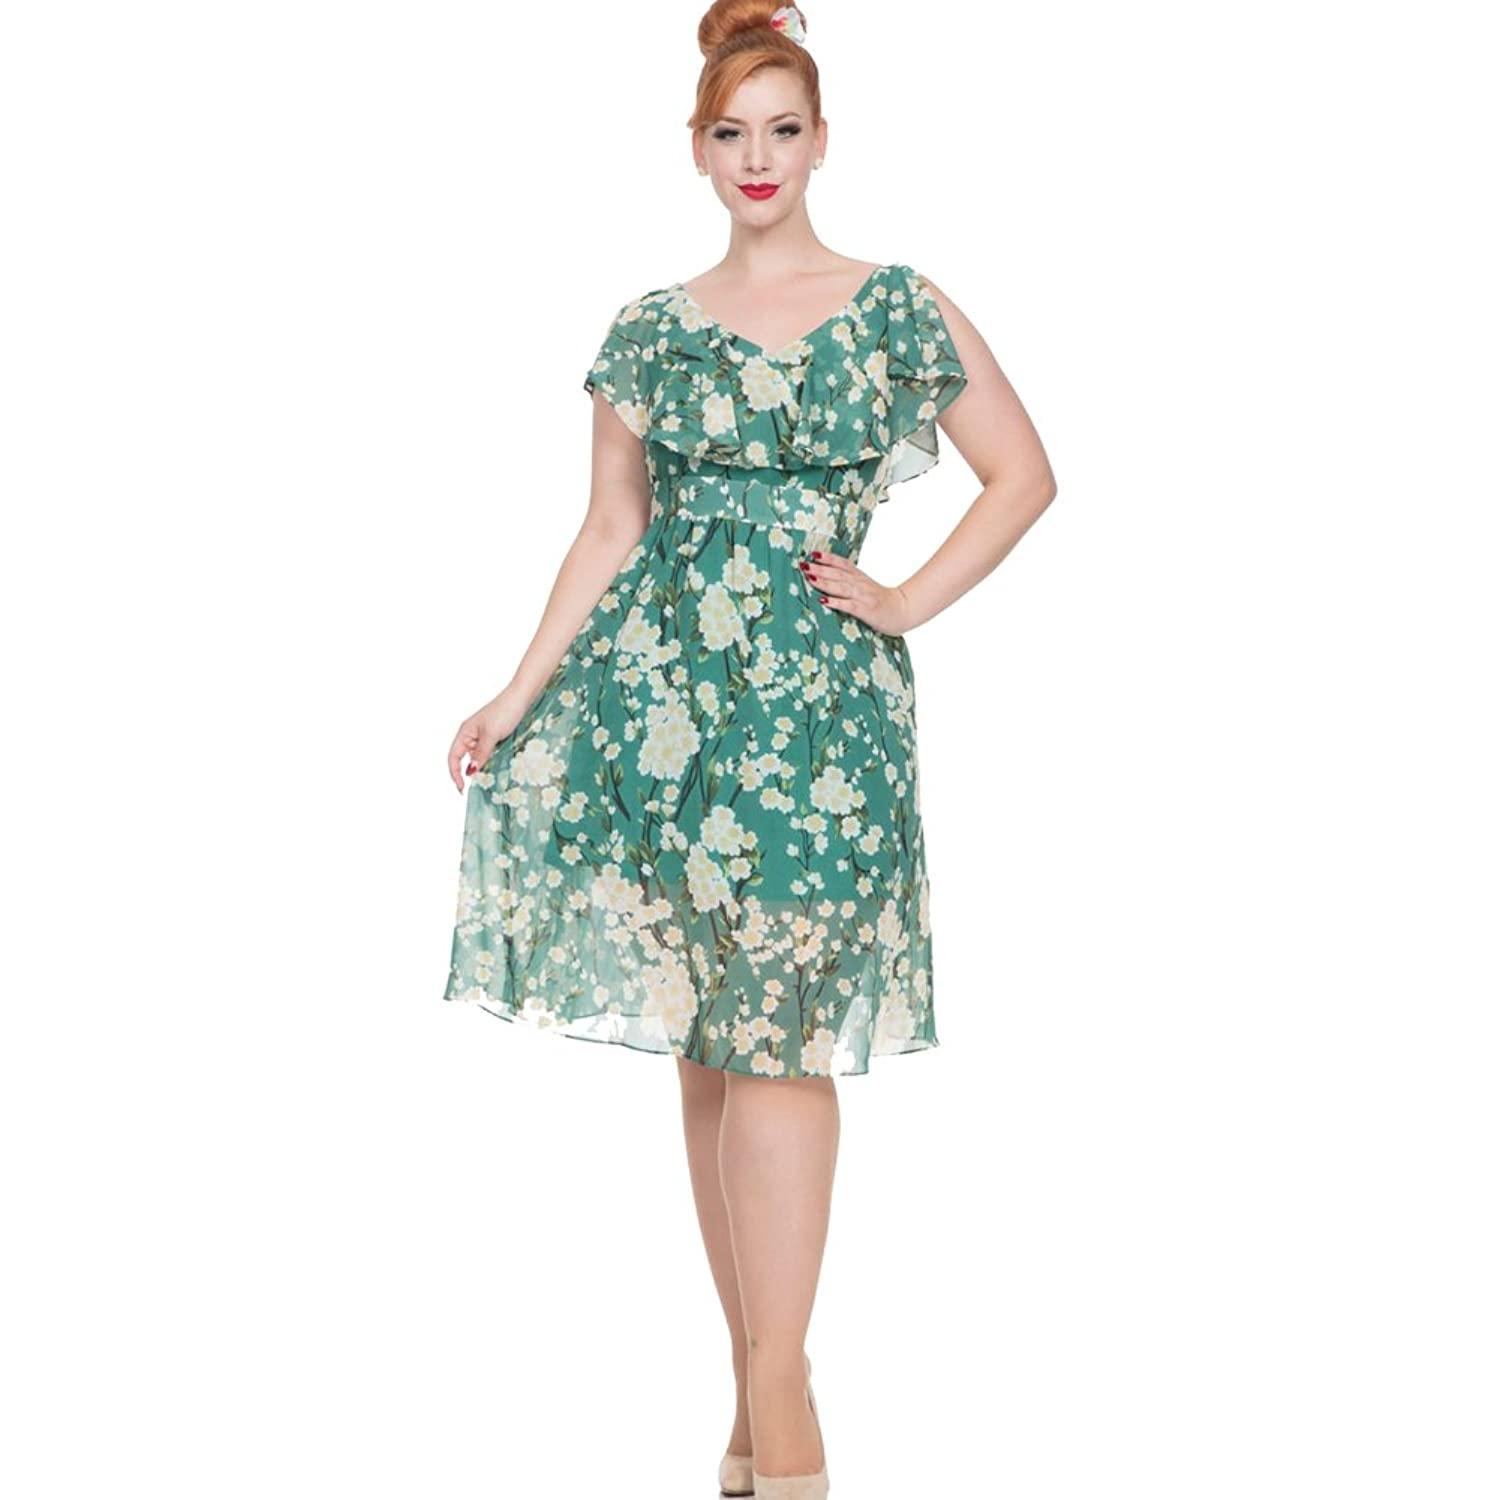 1930s Day Dresses, Afternoon Dresses History Voodoo Vixen AGATHA Blossom Floral Chiffon Flare Dress Green $57.99 AT vintagedancer.com